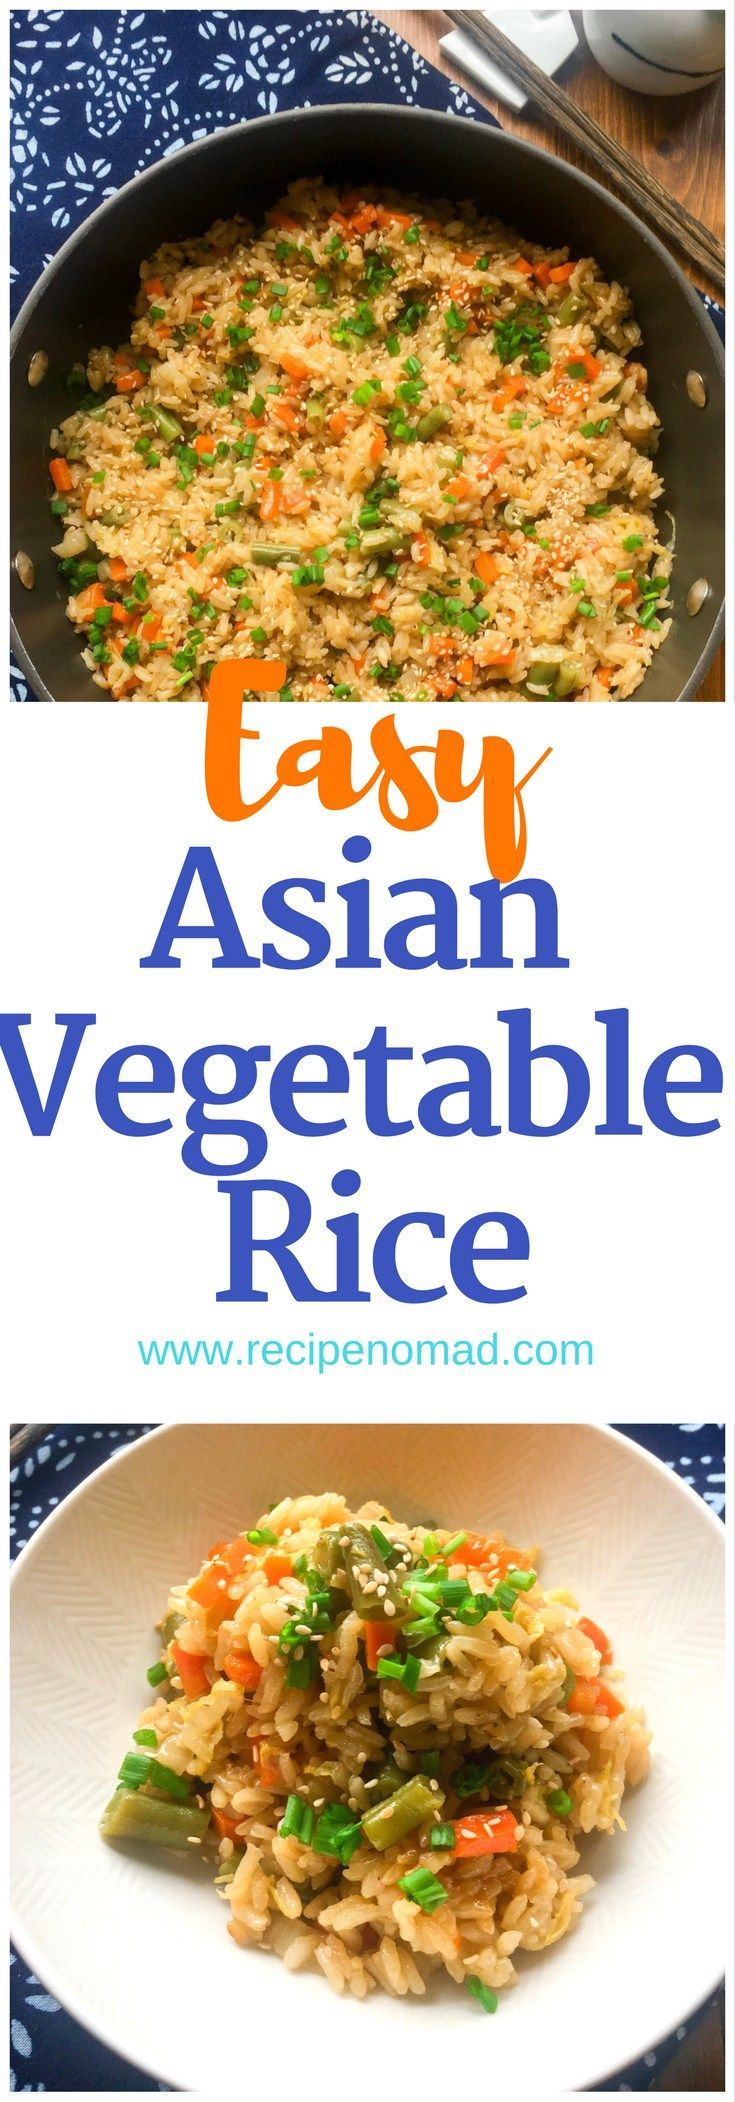 Asian Vegetable Rice  This Simply Delicious Asian Vegetable Rice is made with fresh onions, carrots, green beans, cabbage and ginger, but the recipe is delicious with any vegetables and even chicken!